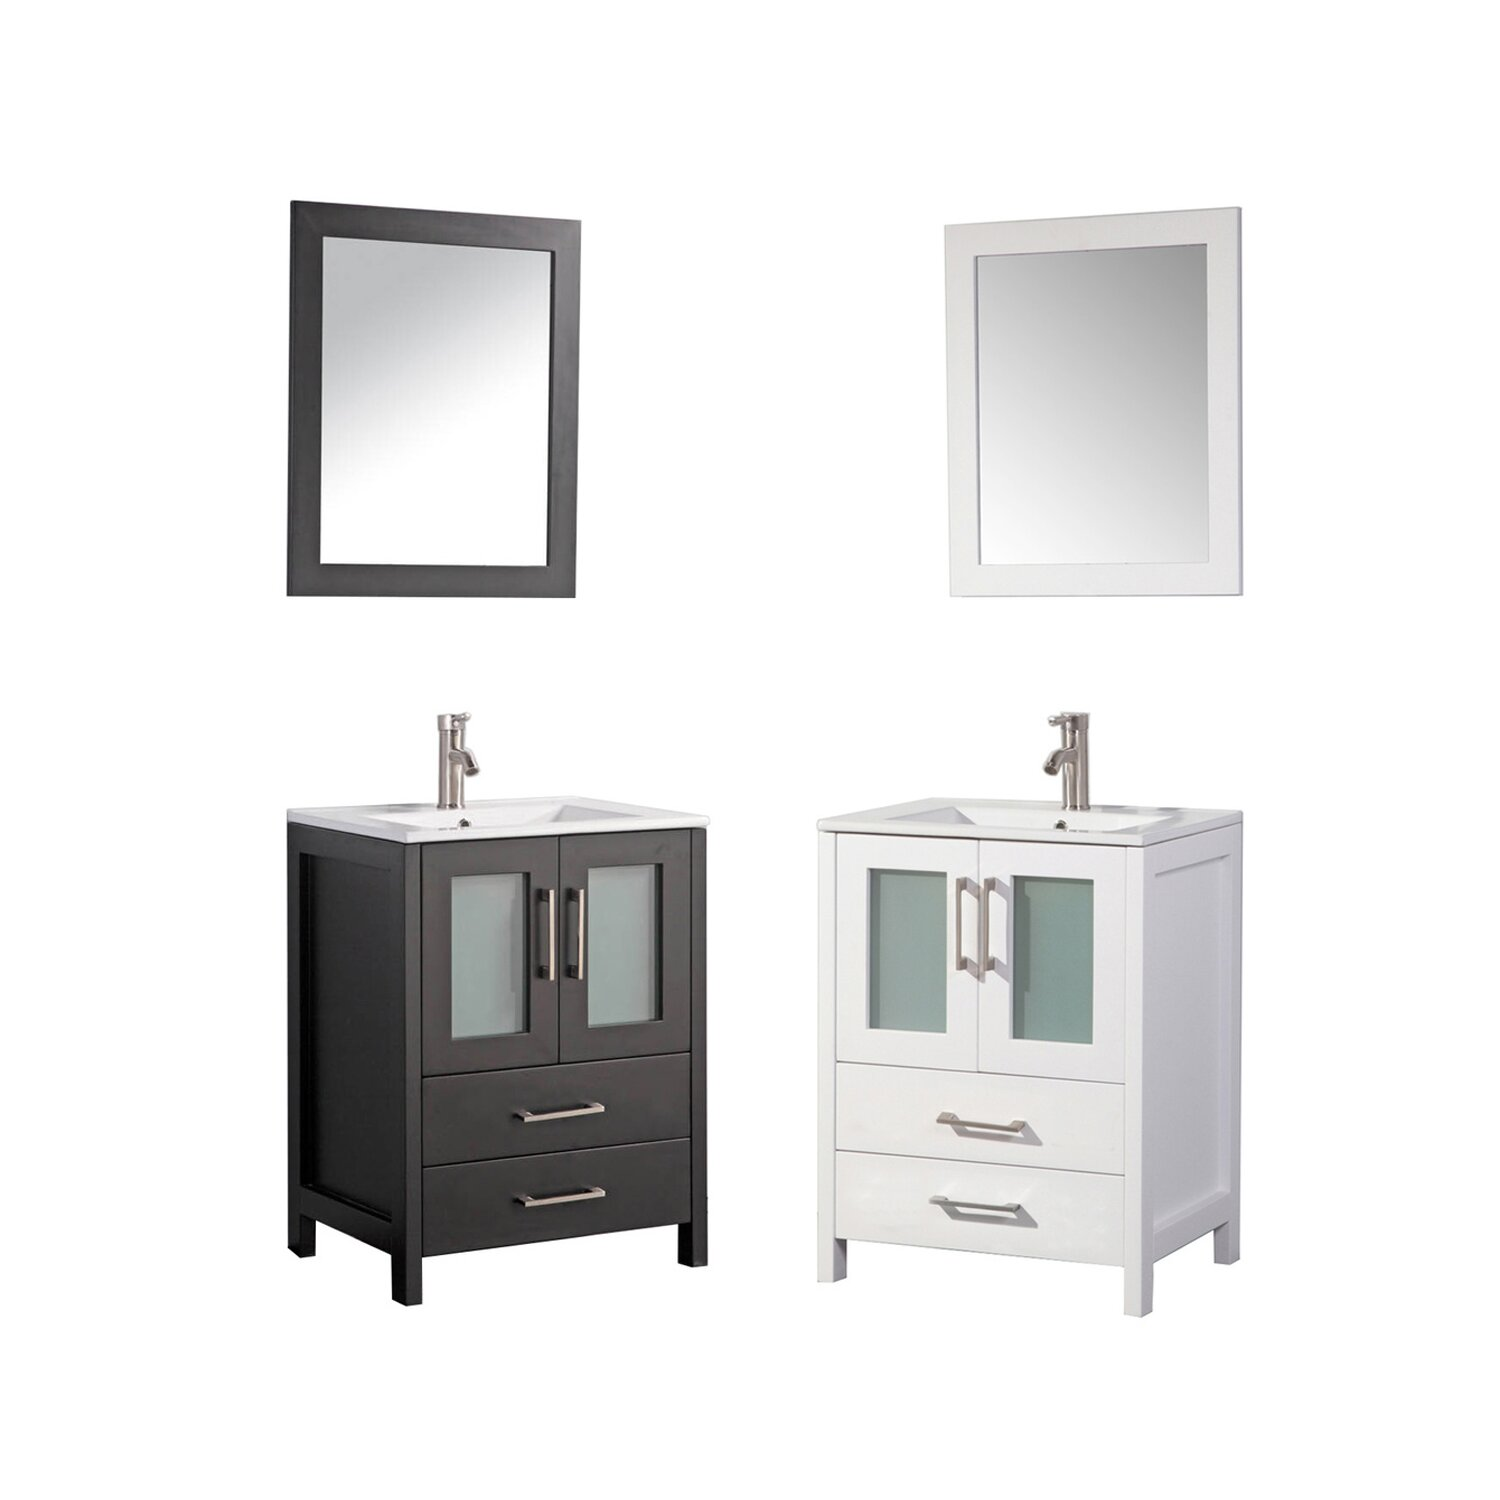 mtd vanities argentina 24 single sink bathroom vanity set with mirror